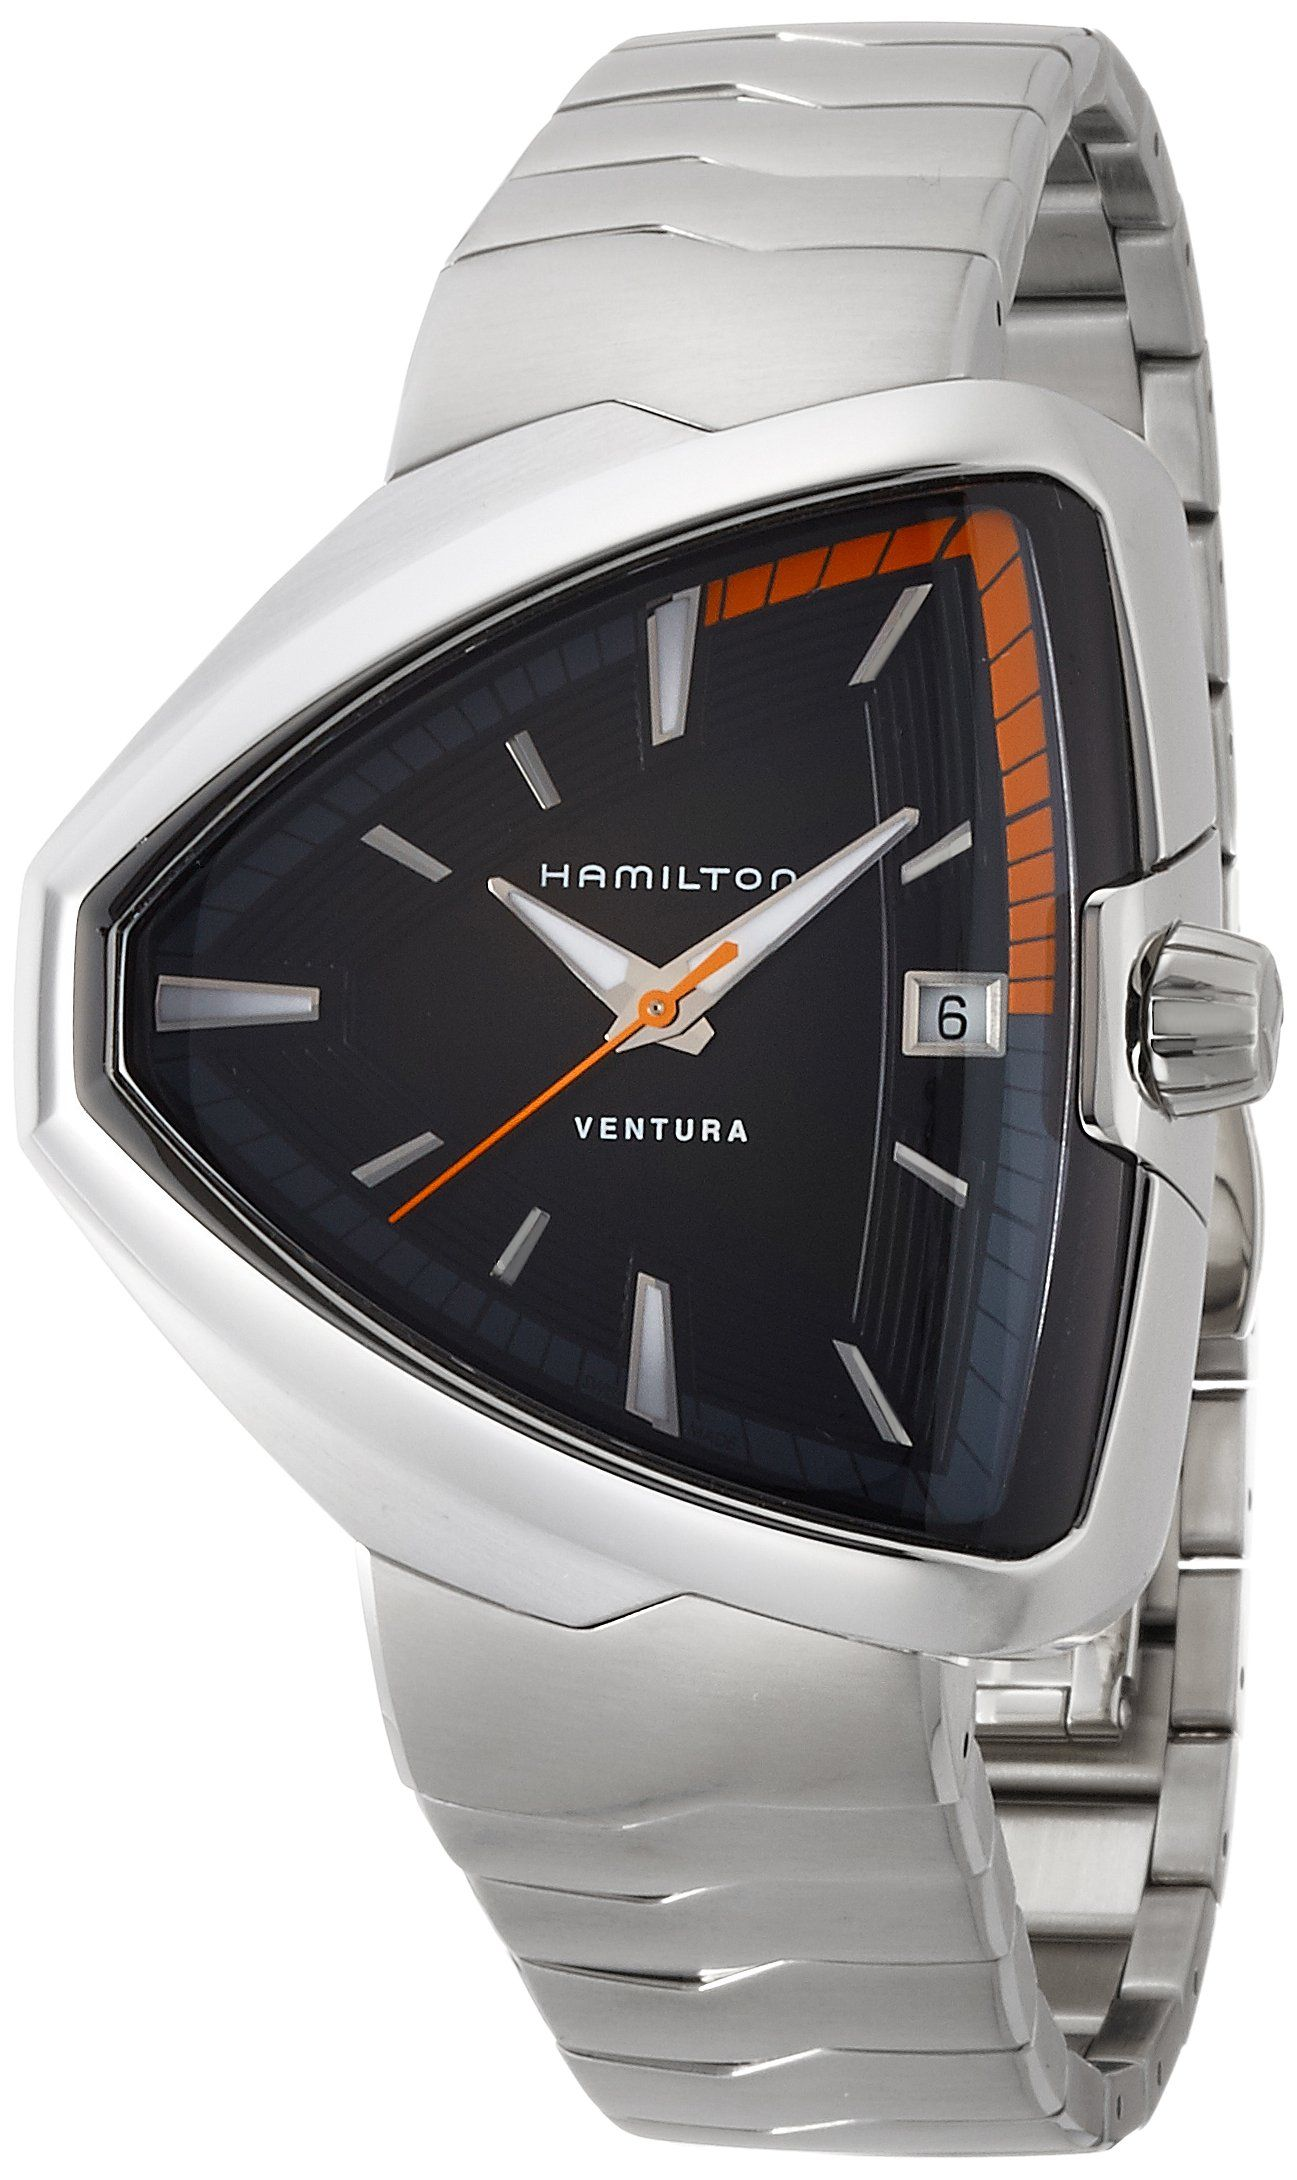 hamilton ventura elvis black dial stainless steel mens watch hamilton ventura elvis80 black dial stainless steel mens watch h24551131 stainless steel case a